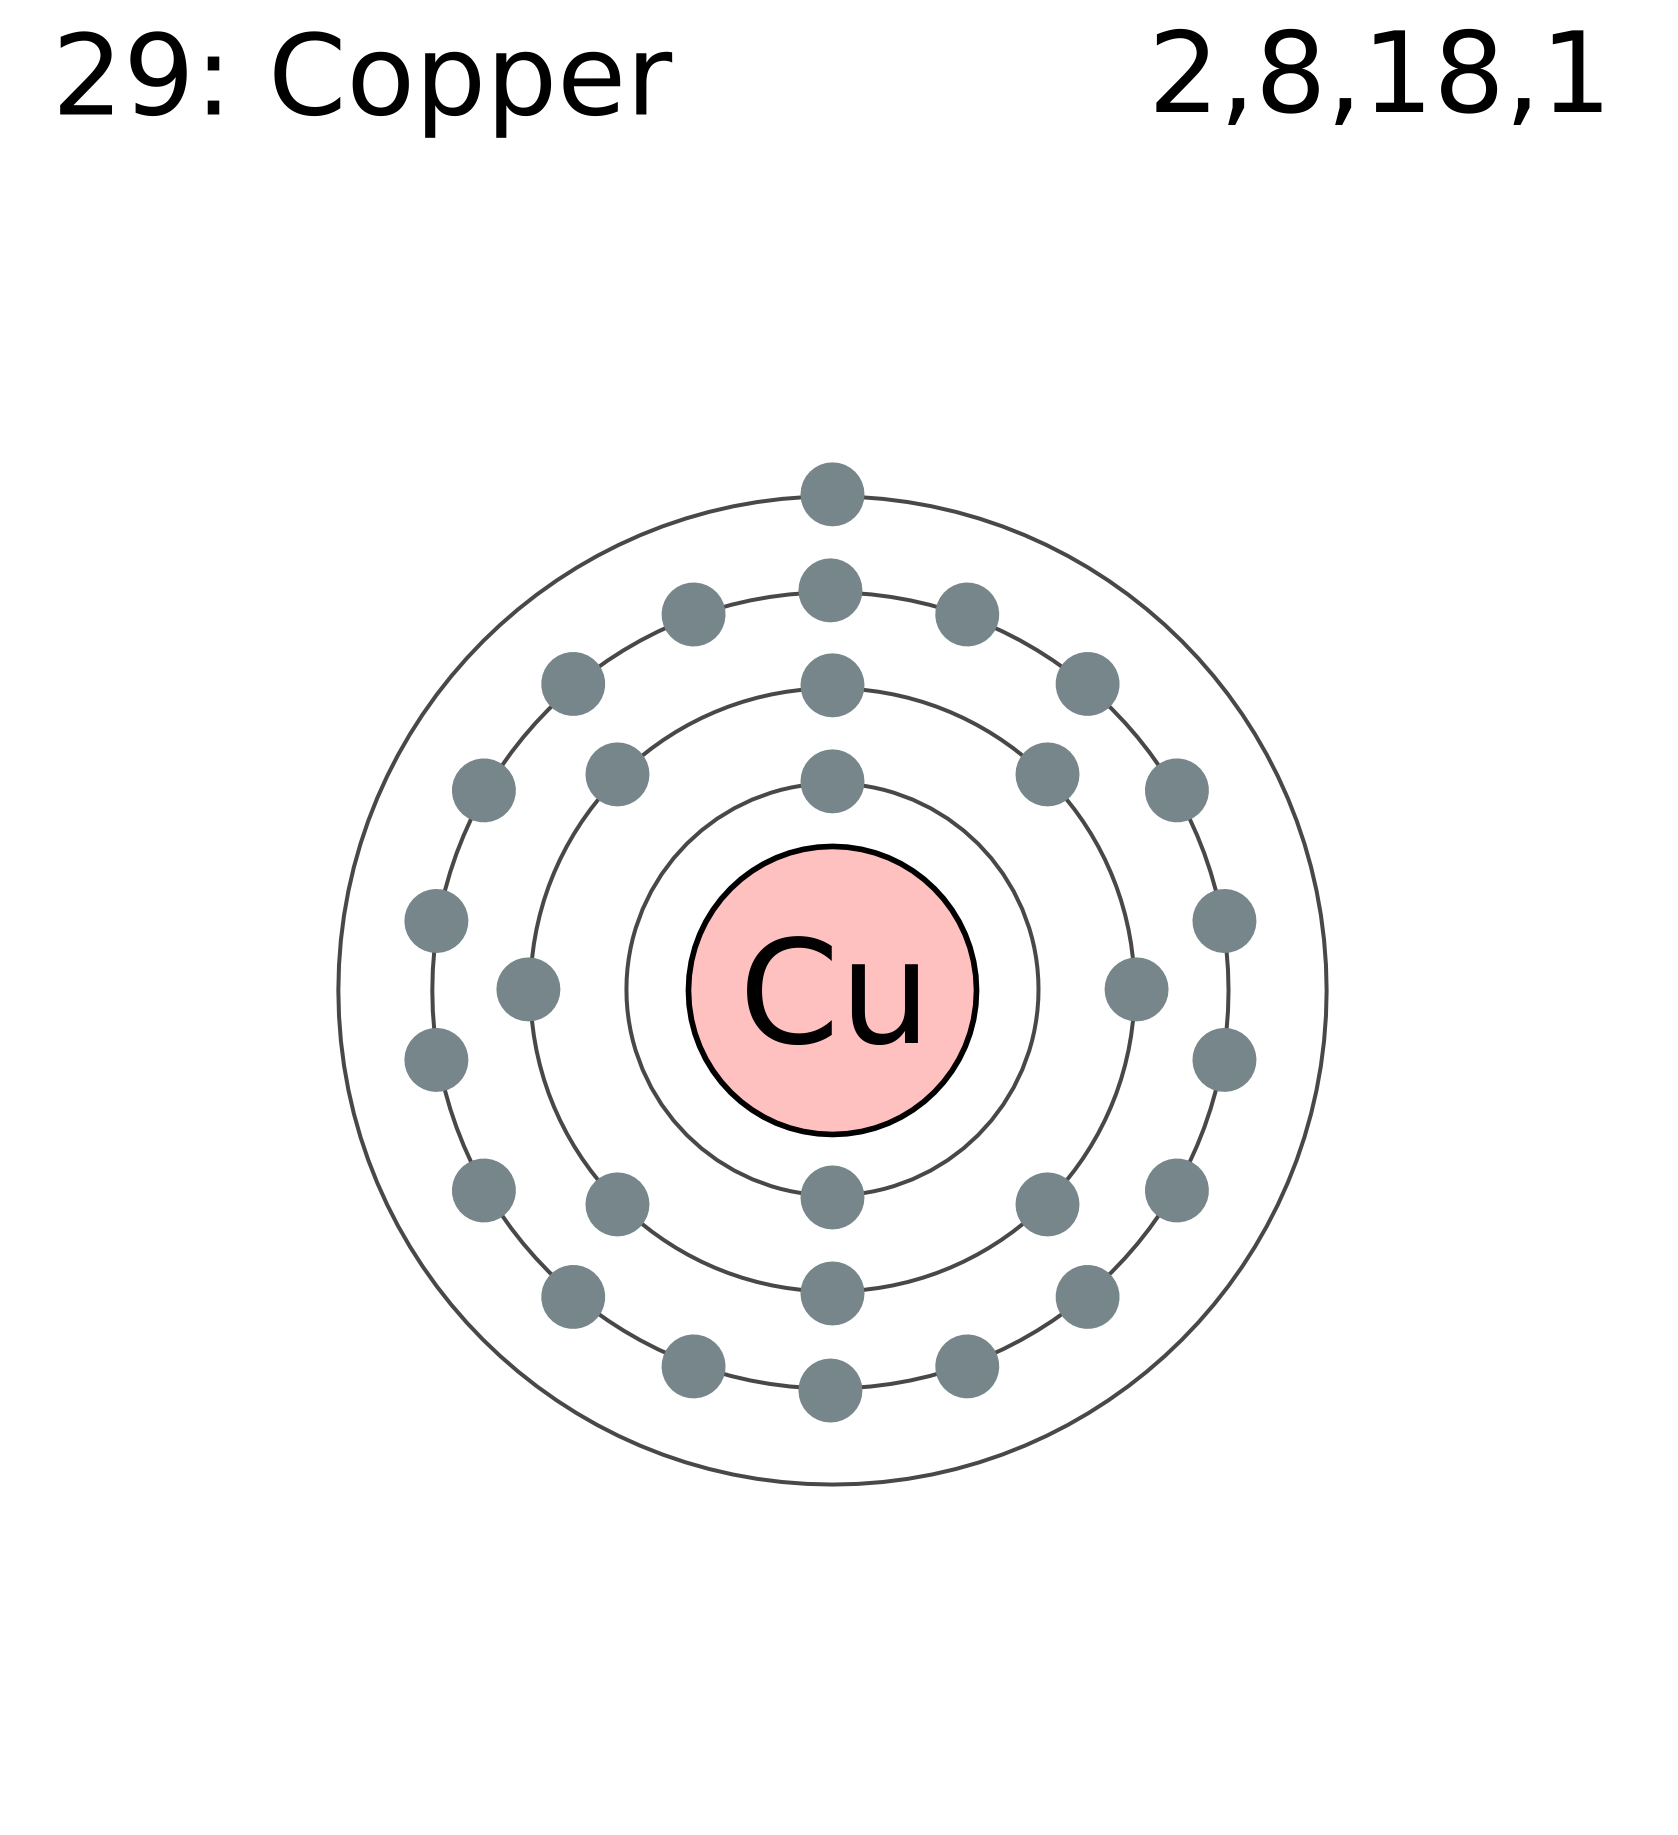 File:Electron shell 029 copper.png - Wikimedia Commons